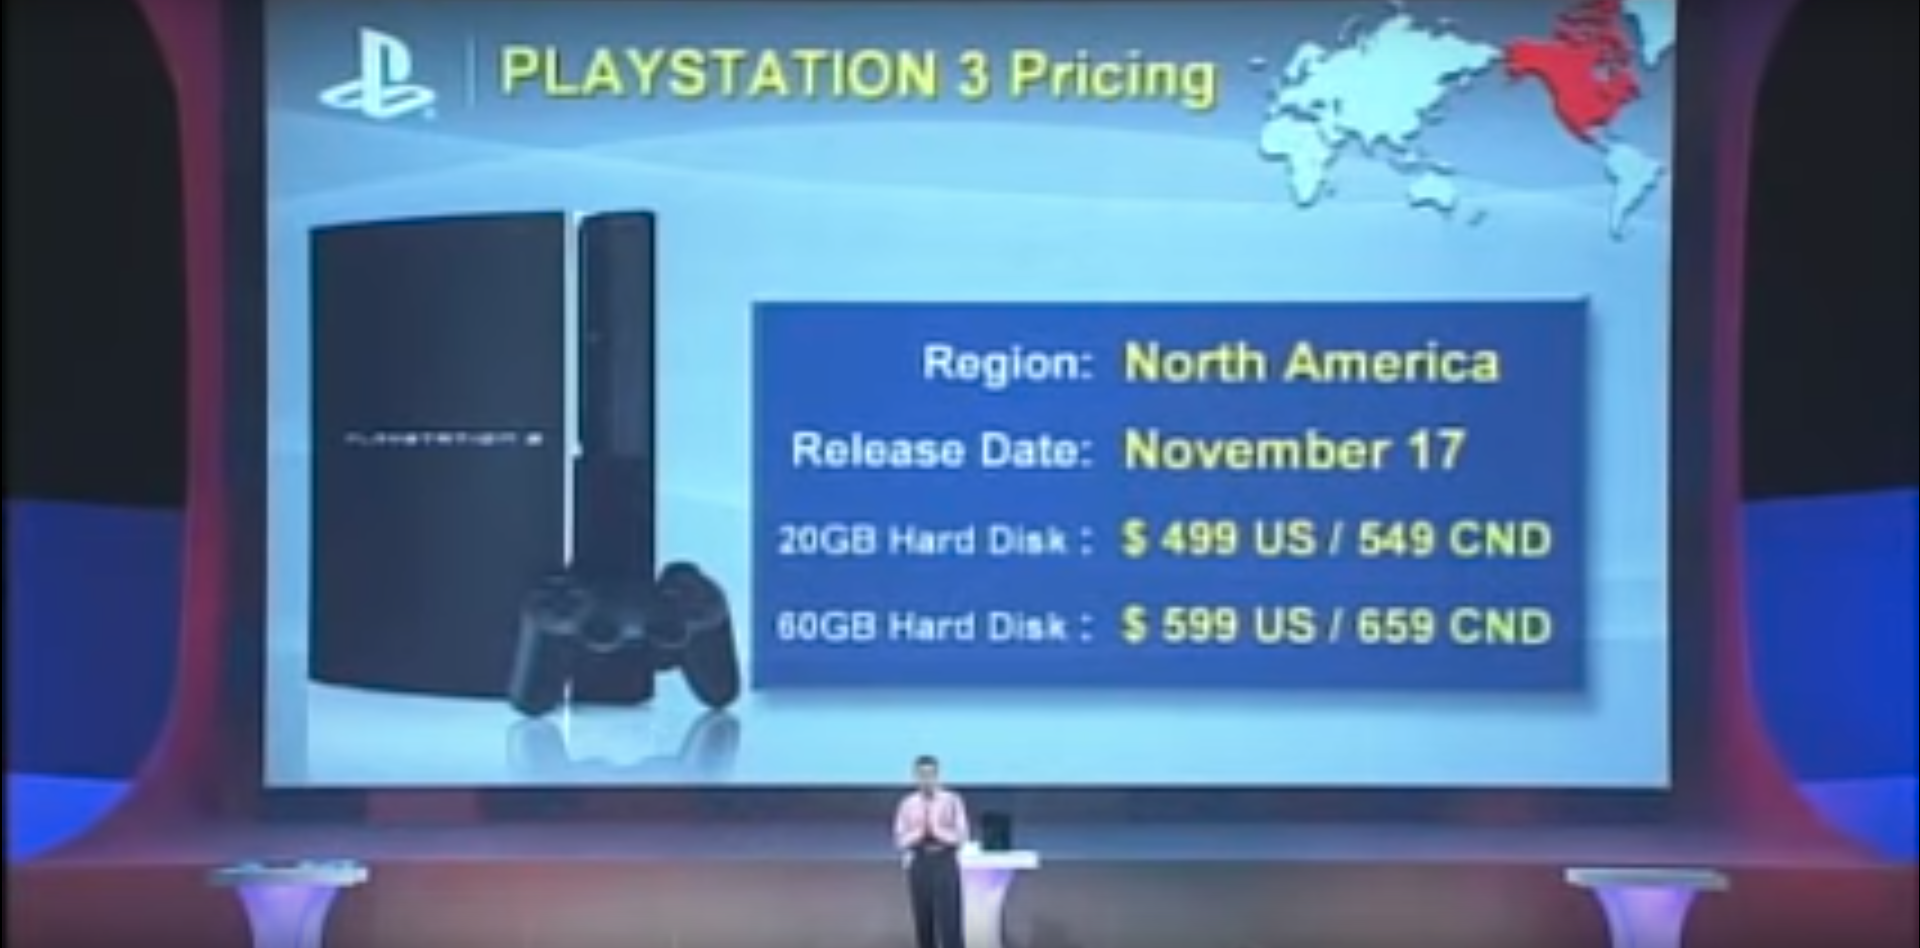 PlayStation 3 price announcement